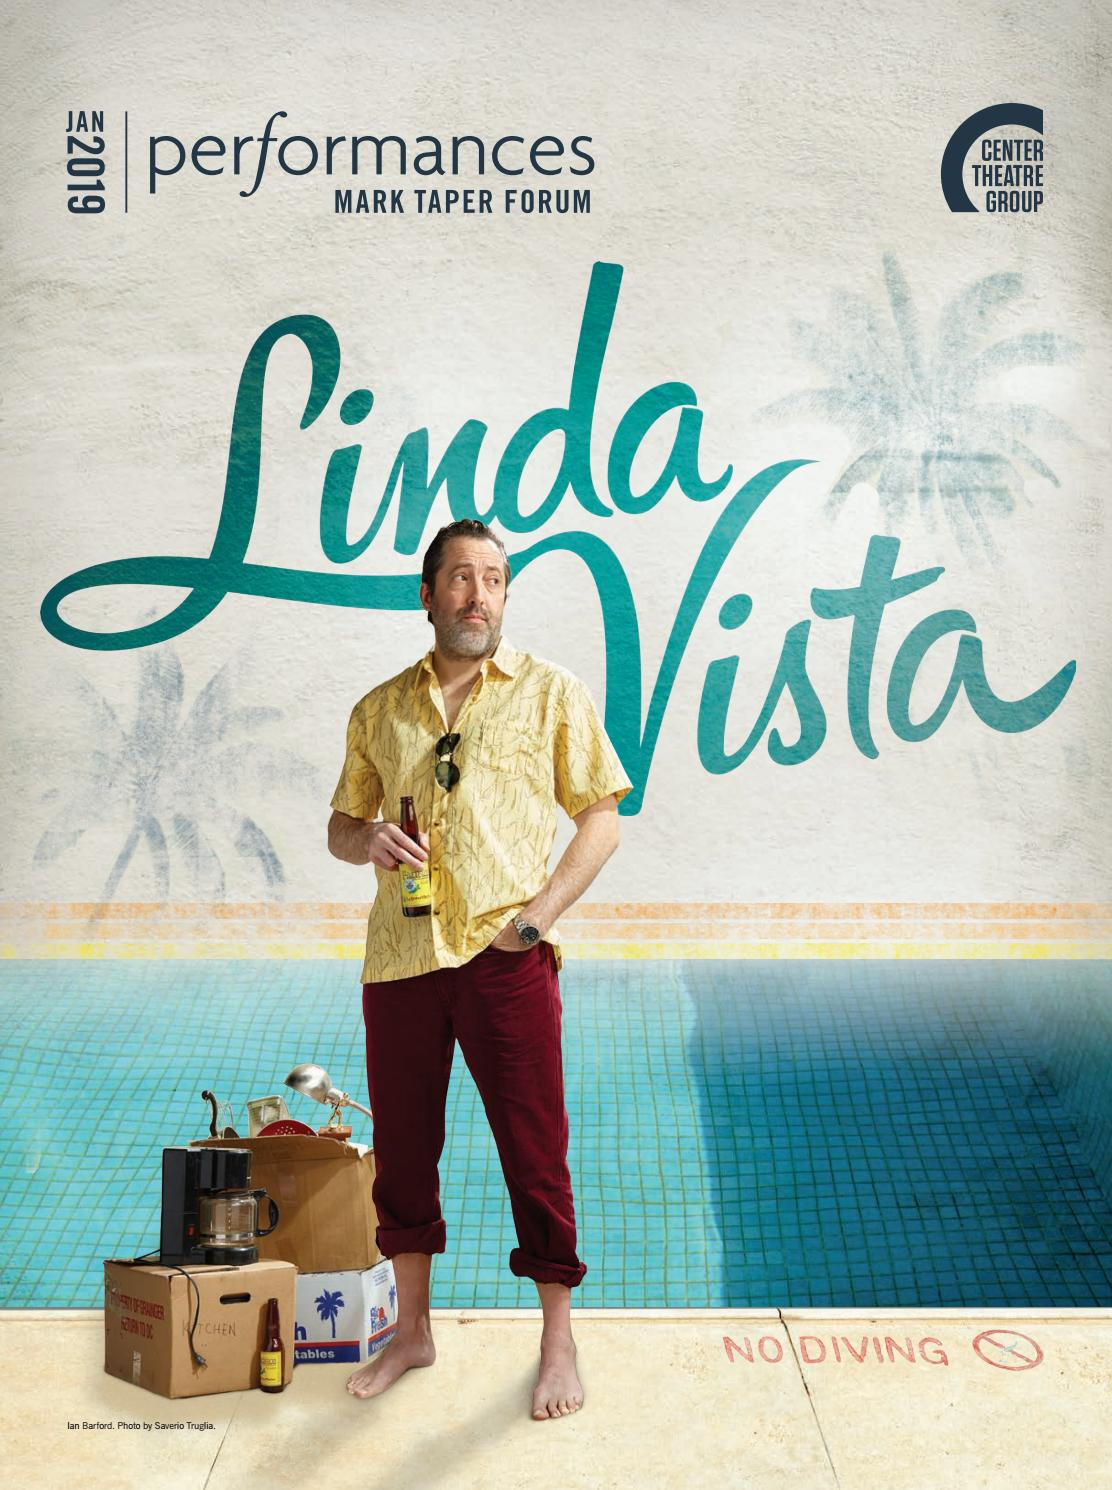 Pool Im Garten Forum Linda Vista At Center Theatre Group January 2019 By Center